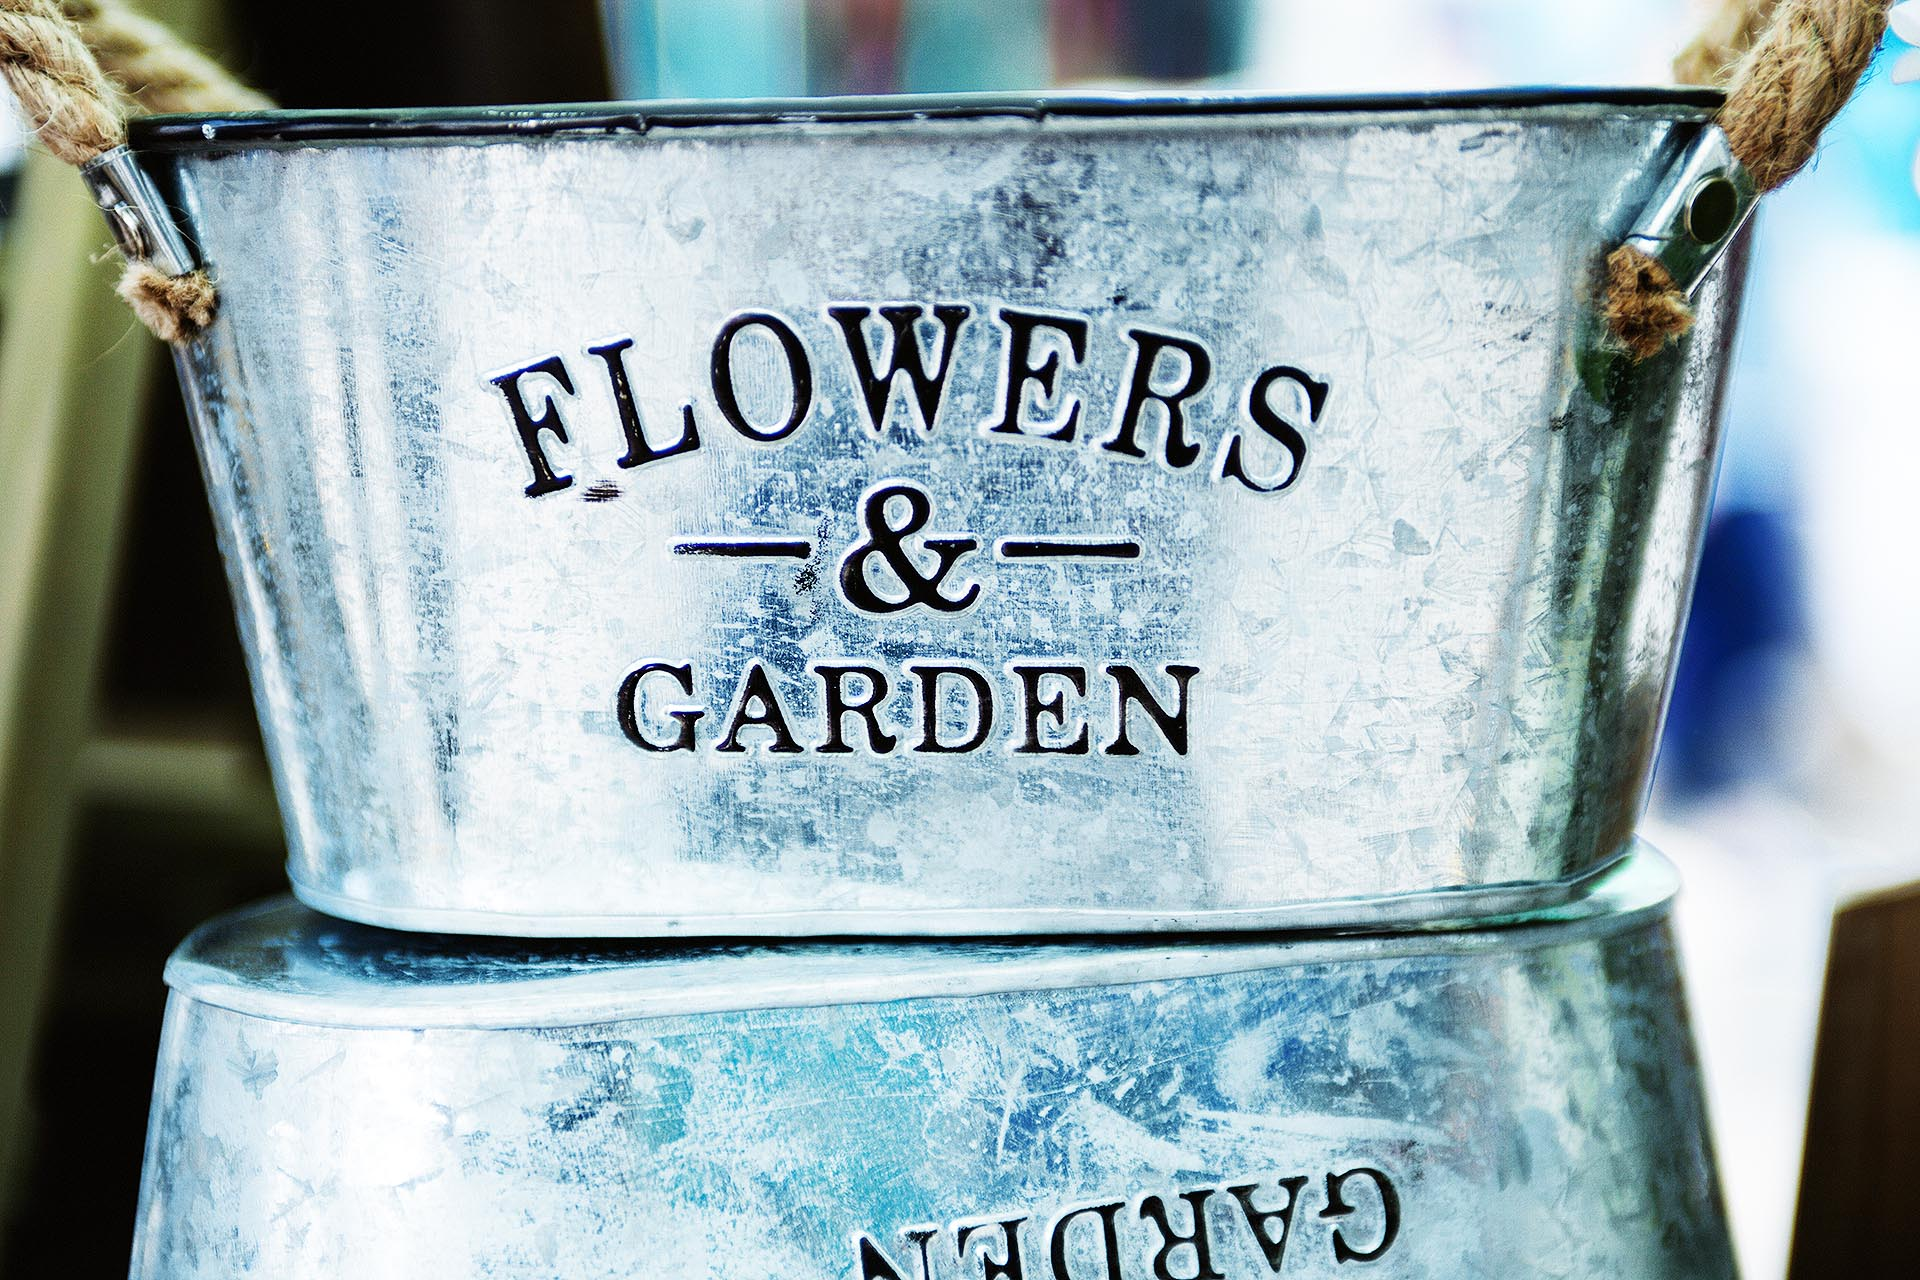 Image of a flowers and garden metallic trug on a table | Amazing garden furniture DIY ideas in collaboration with Sloane and Sons